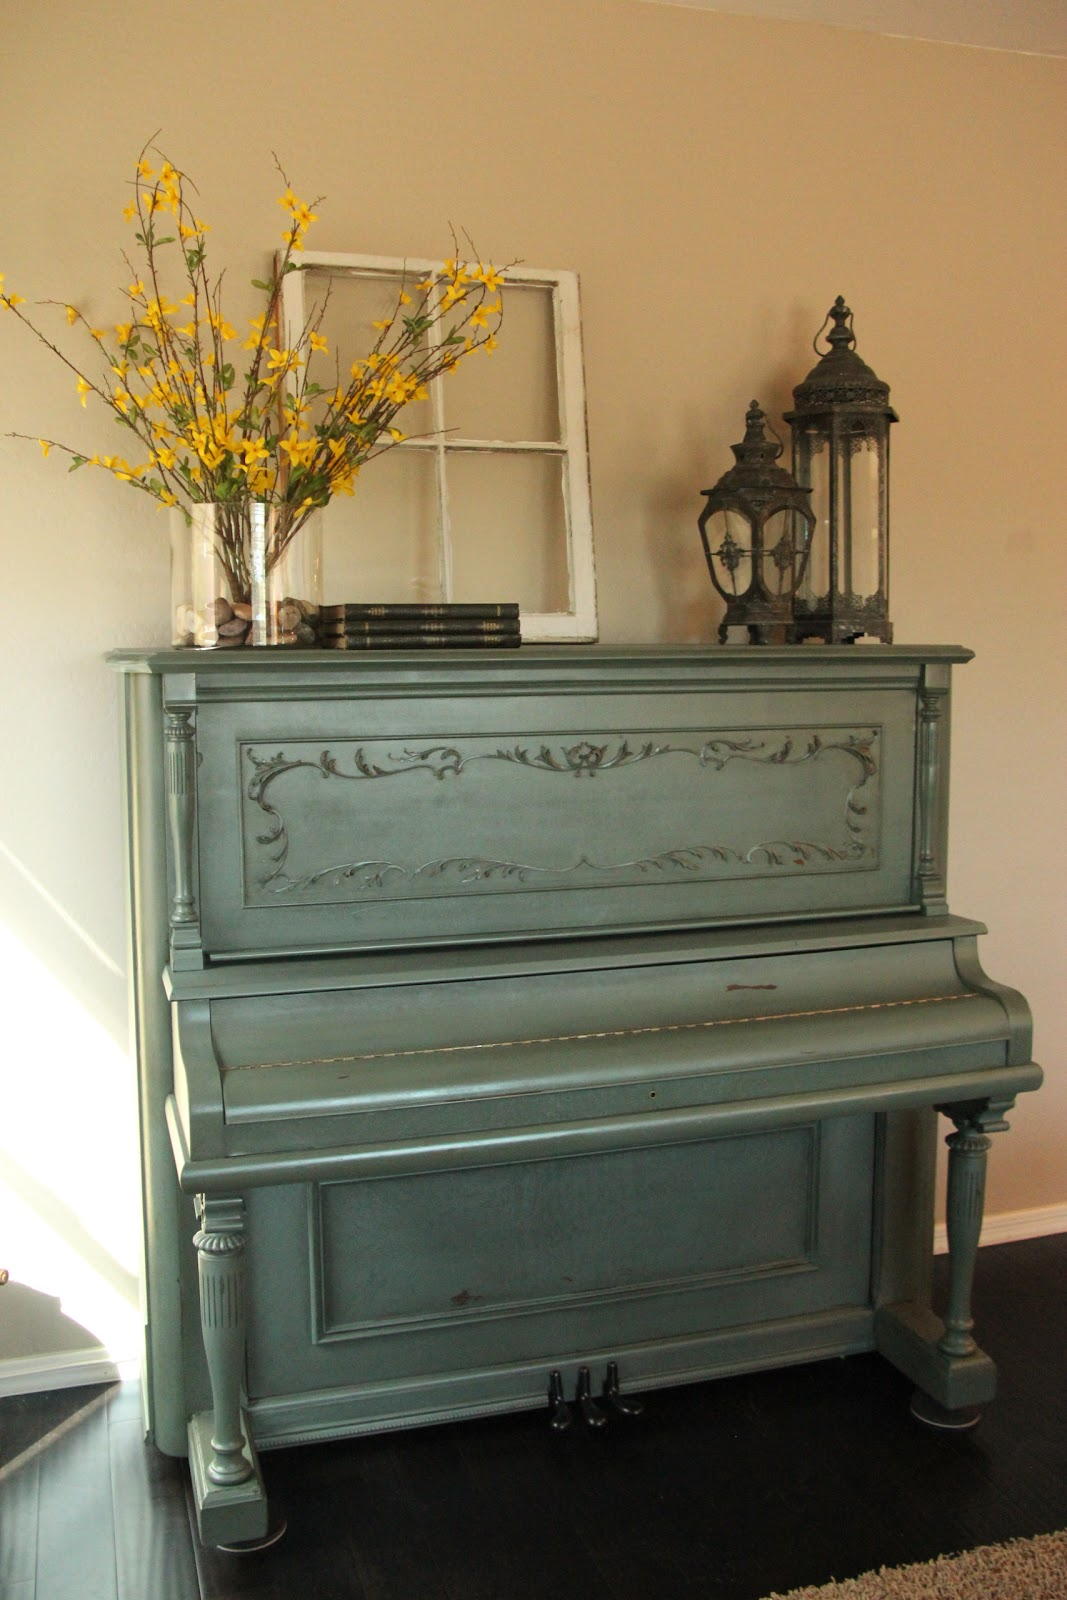 New To You Painted Distressed Piano